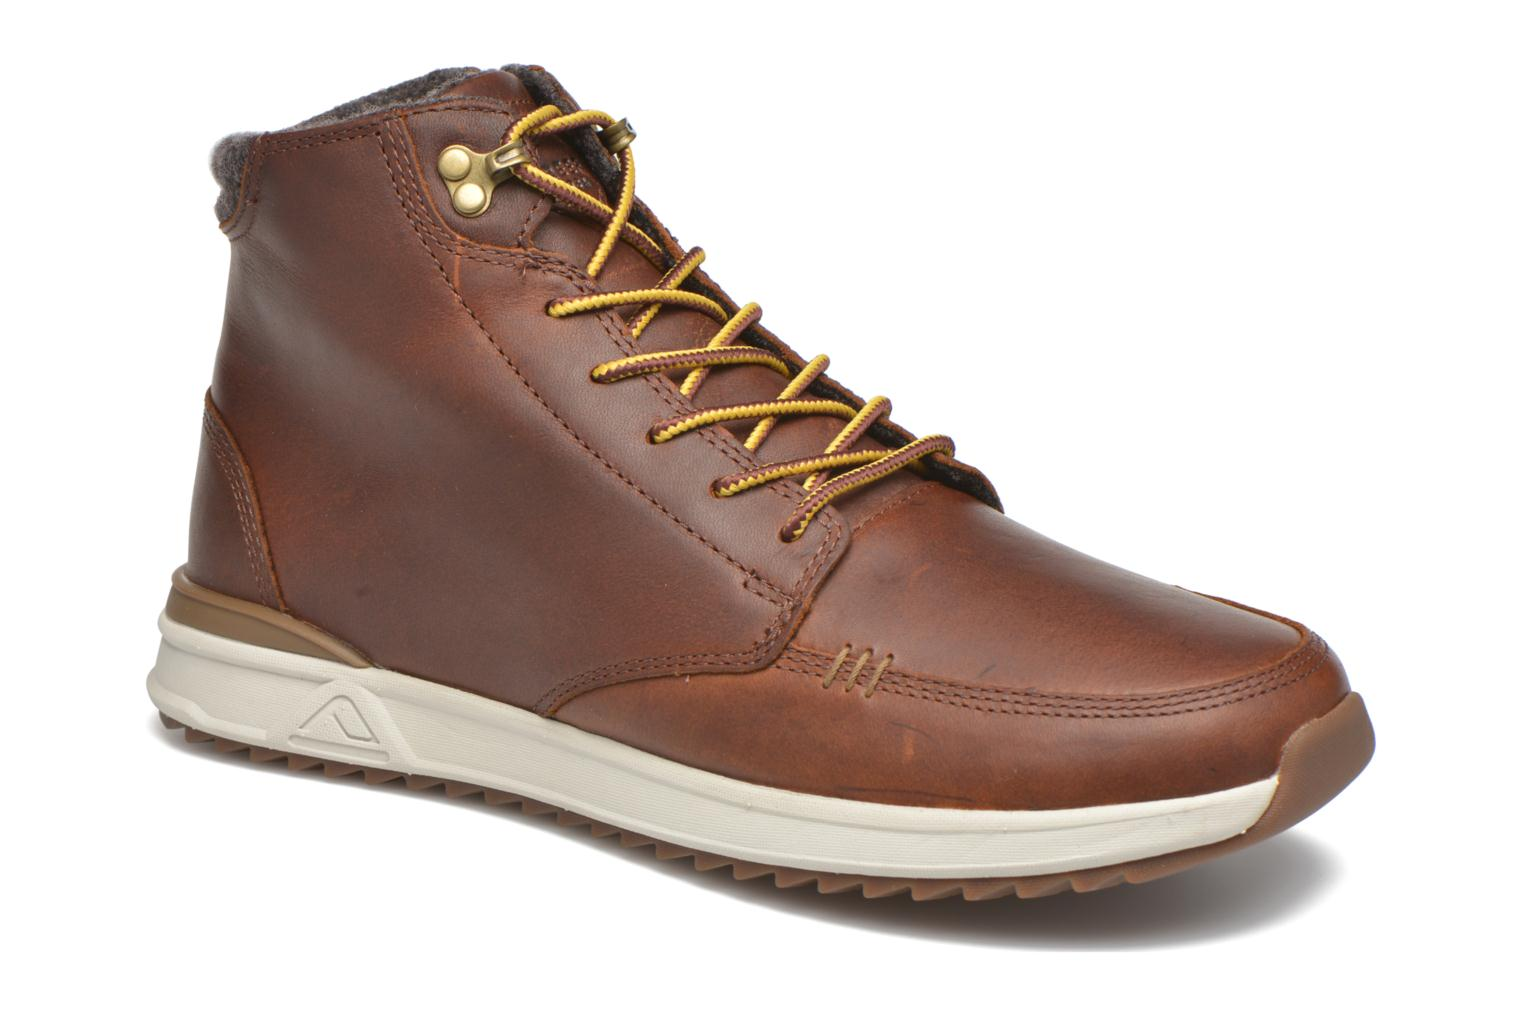 Sneakers Rover Hi Boot by Reef